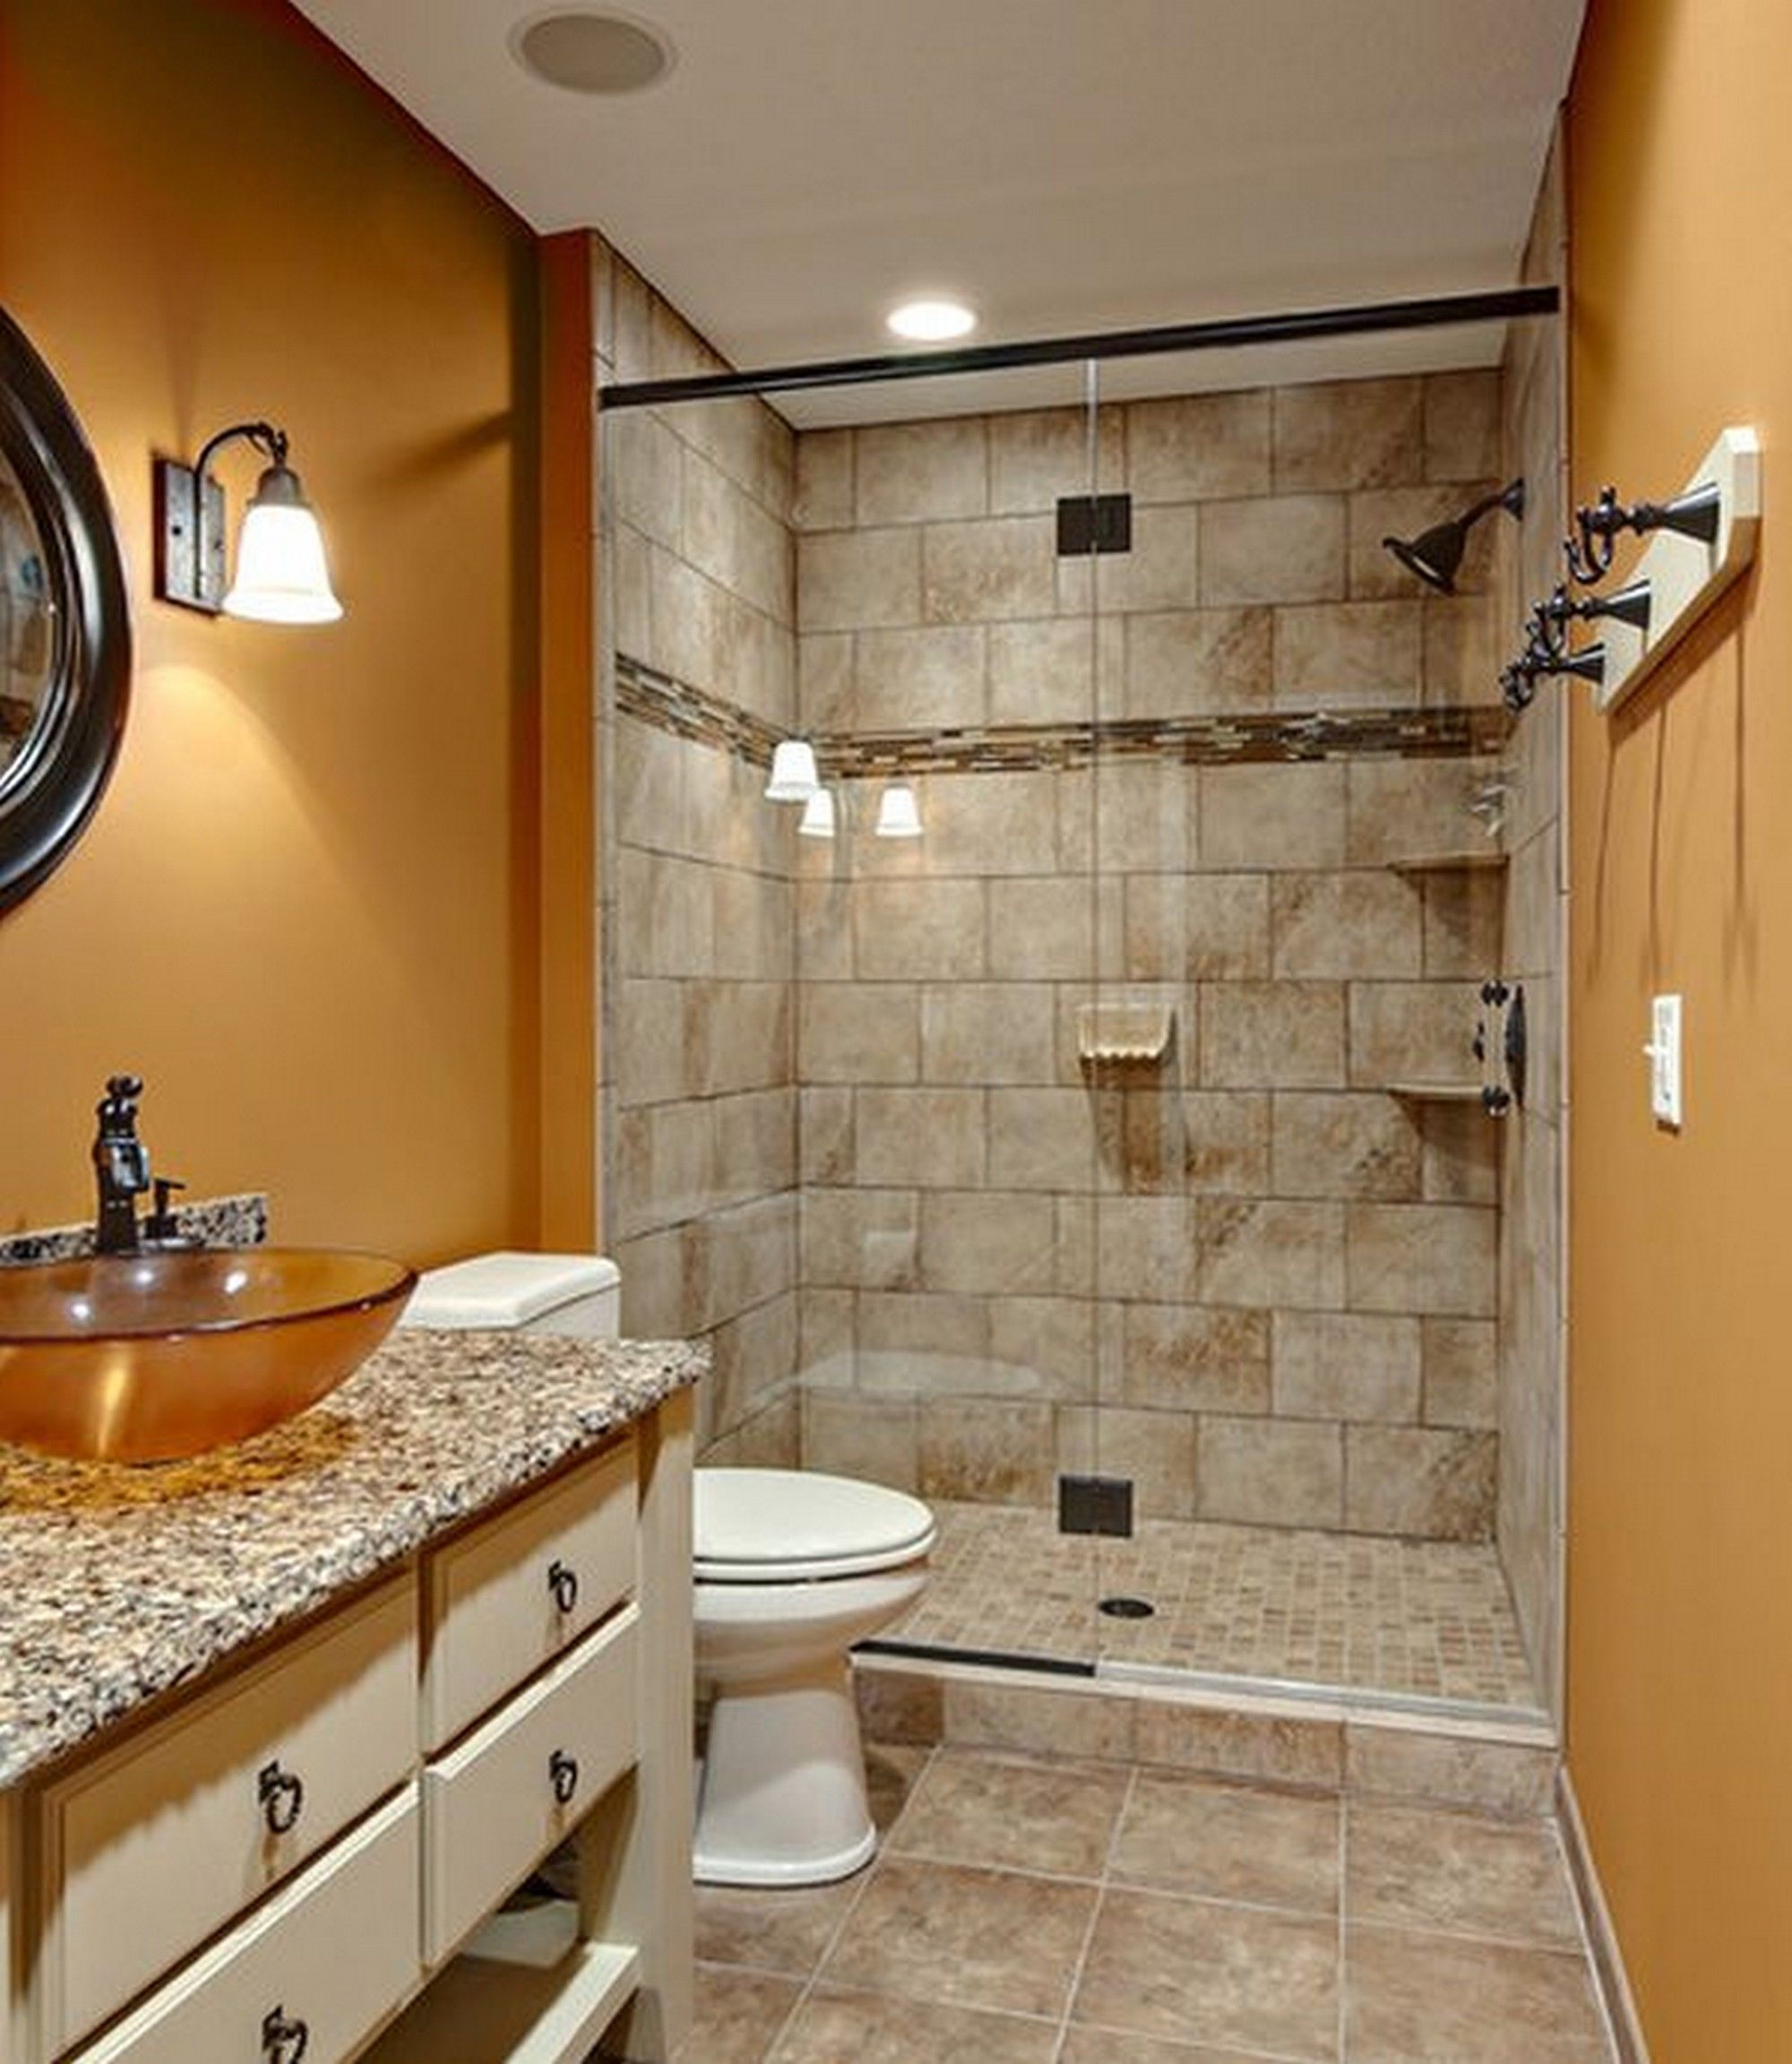 Modern Bathroom Design Ideas With Walk In Shower  Bathroom Simple Small Bathroom Ideas Pictures Tile Inspiration Design